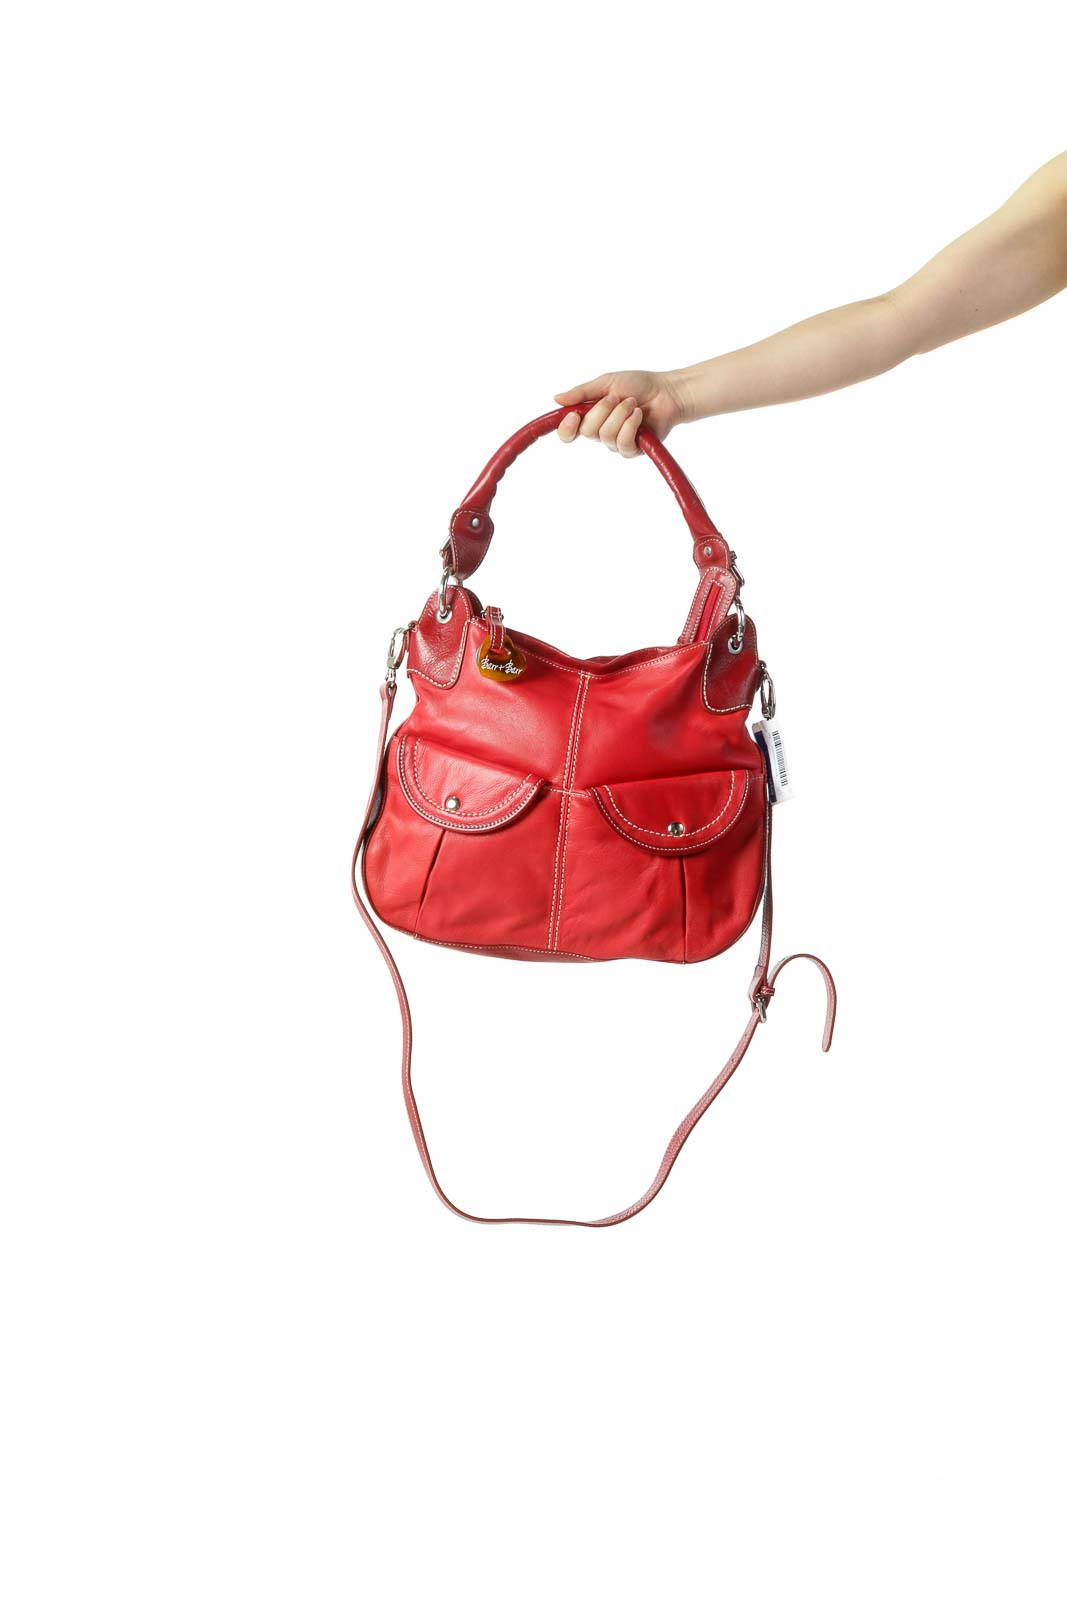 Red Stiched Heavy Leather Shoulder Bag with Crossbody Strap